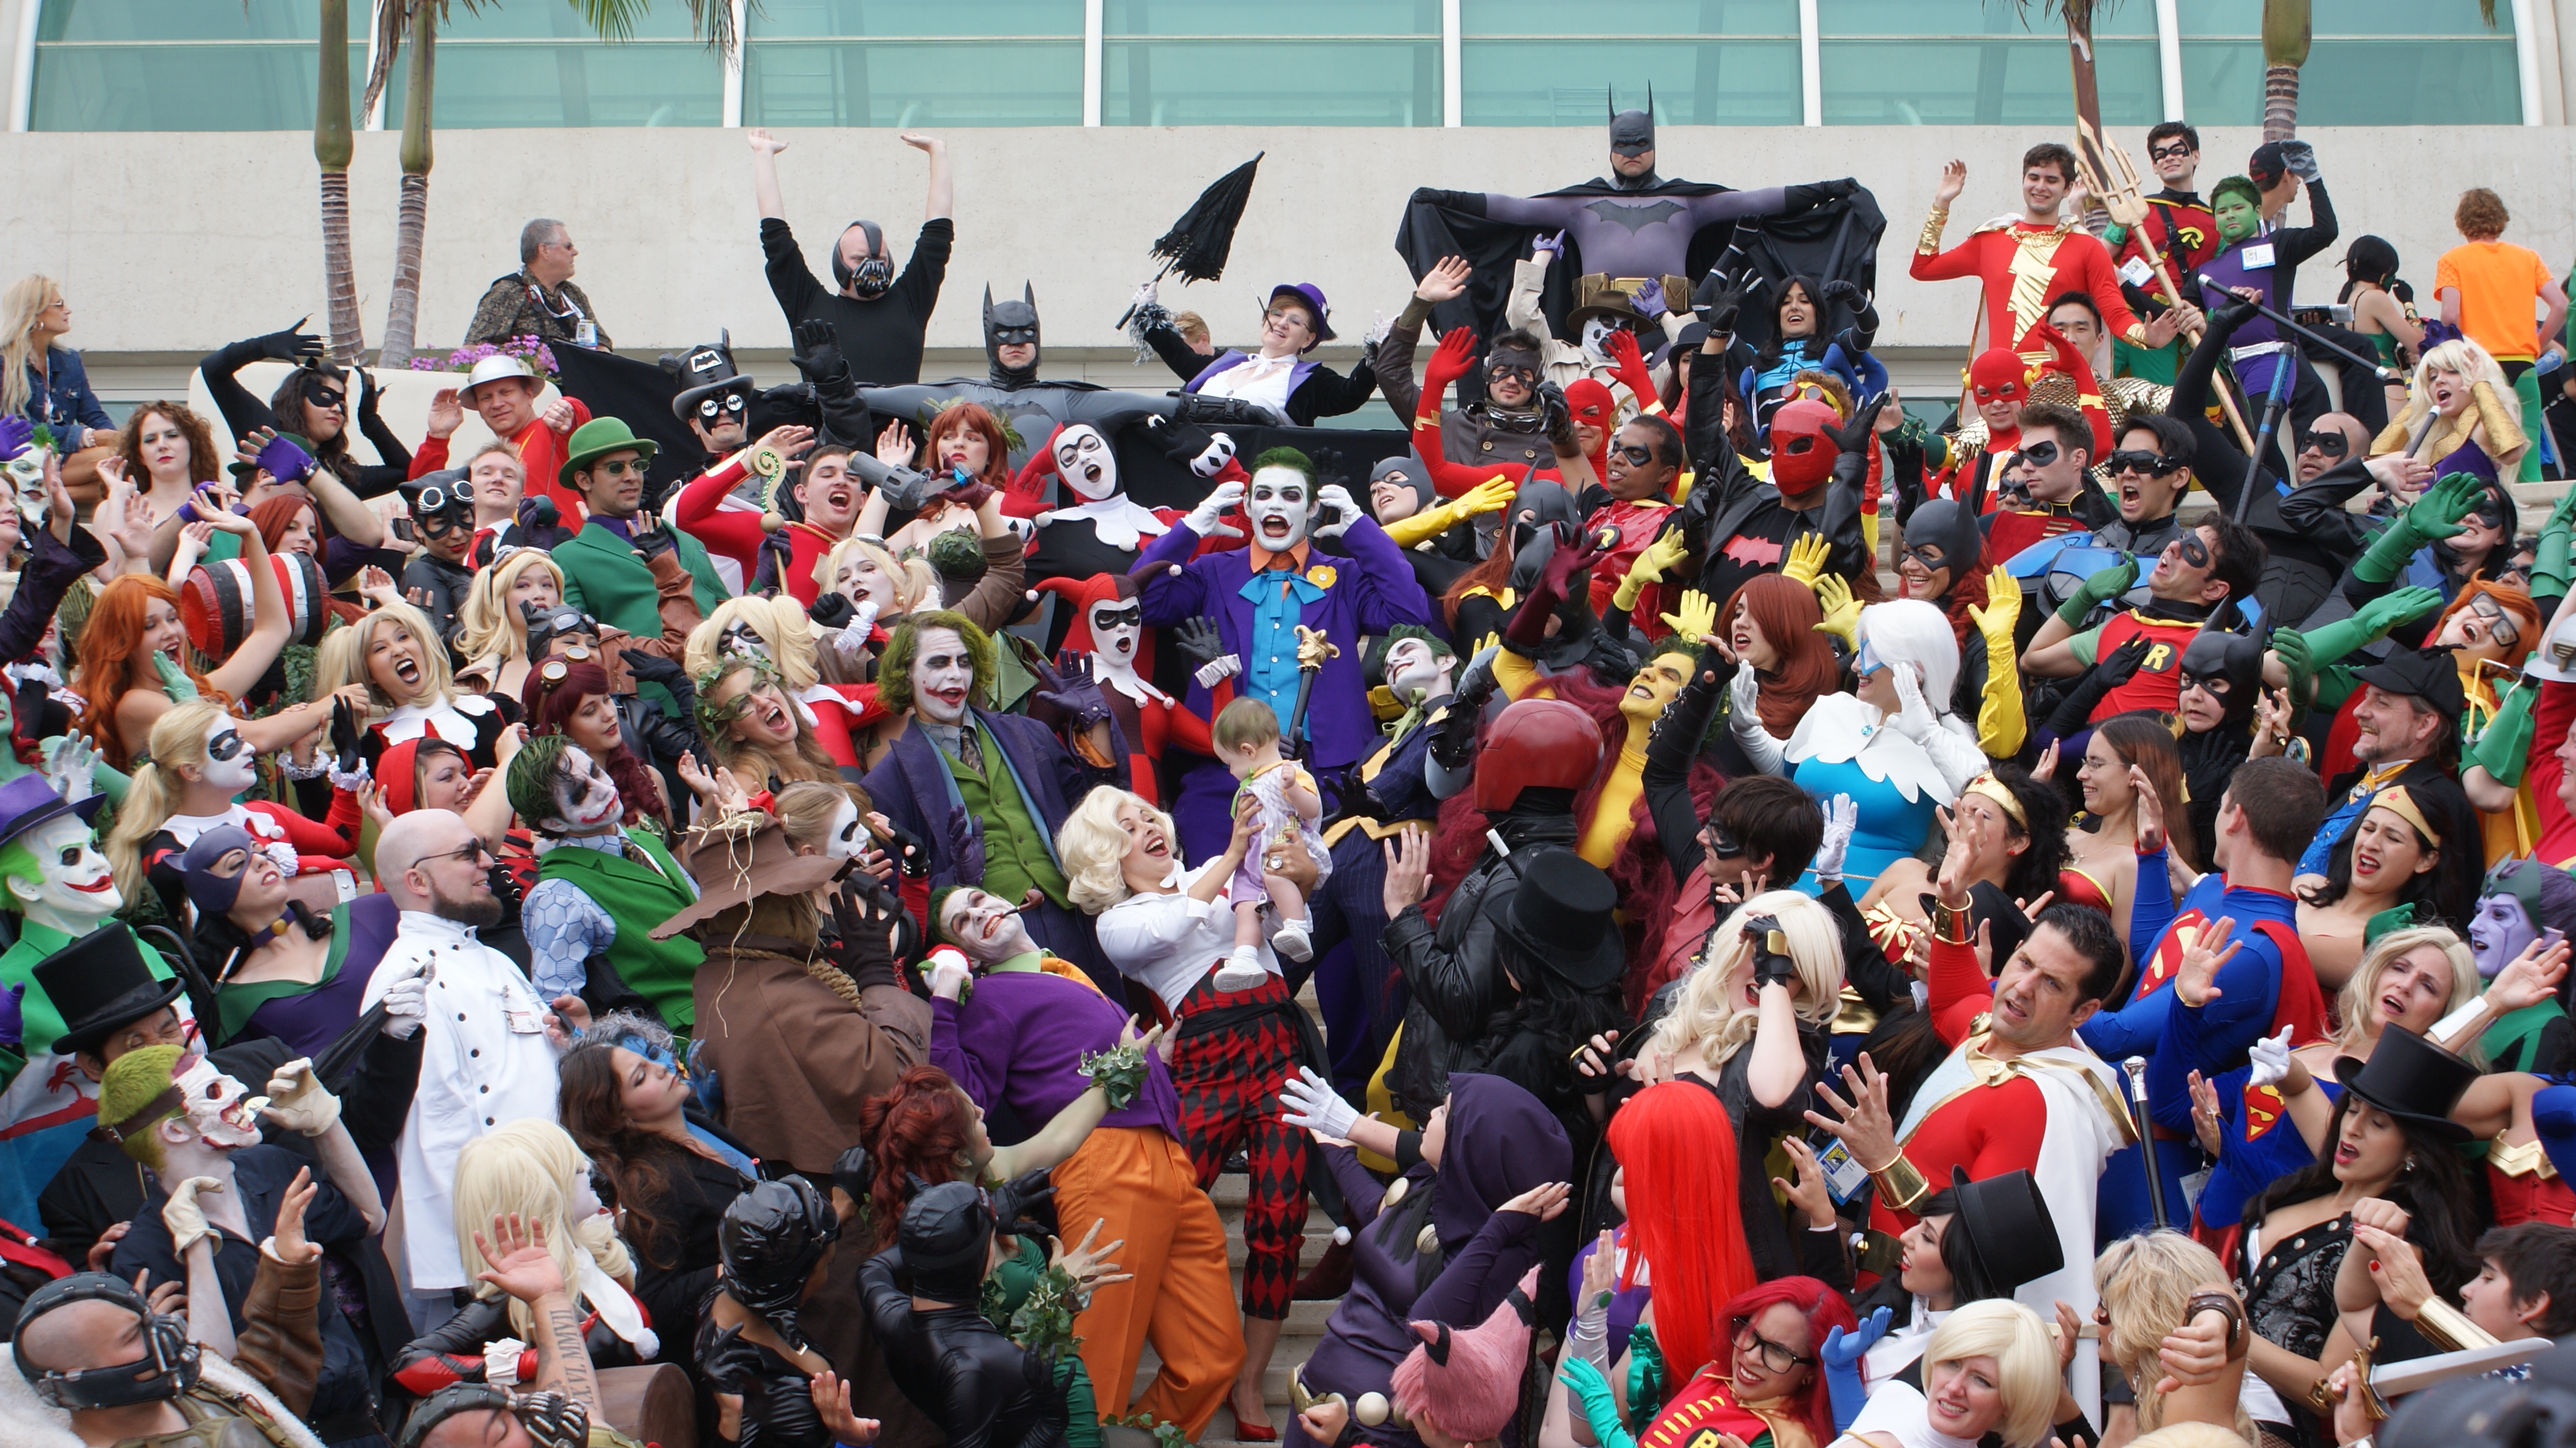 Anime Characters For Comic Con : File comic con  g wikimedia commons